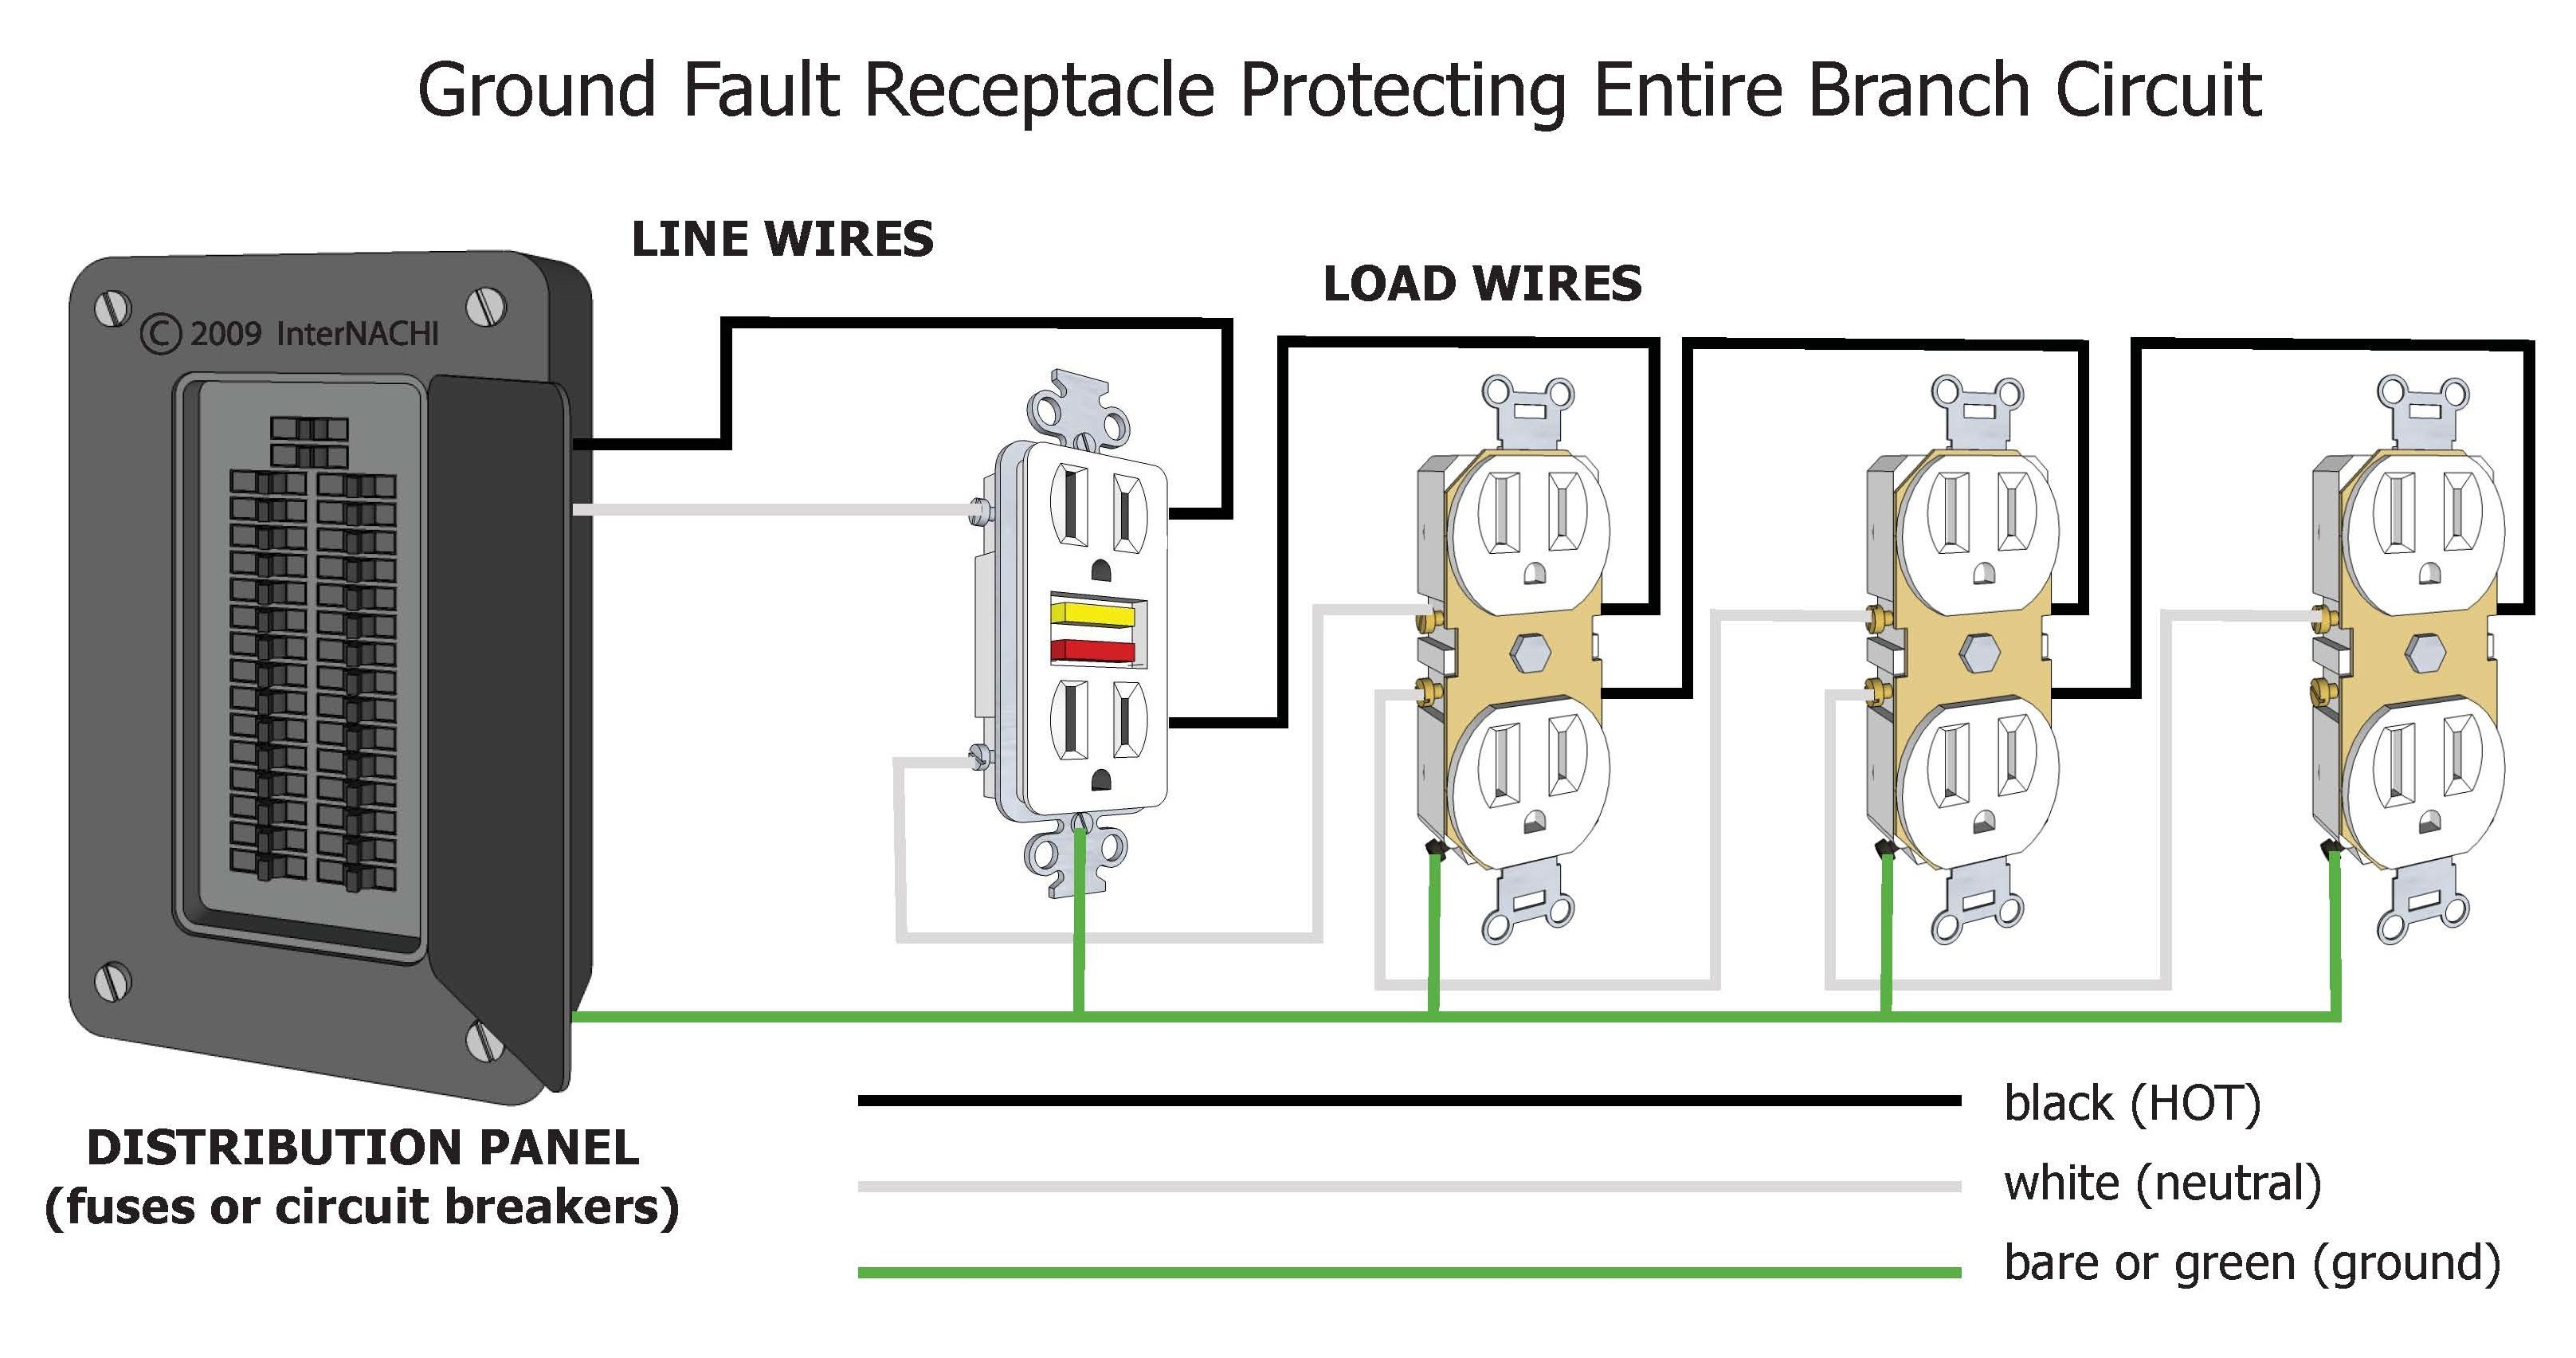 gfci branch circuit color gfci circuit breaker wiring diagram efcaviation com gfci wiring diagram at alyssarenee.co